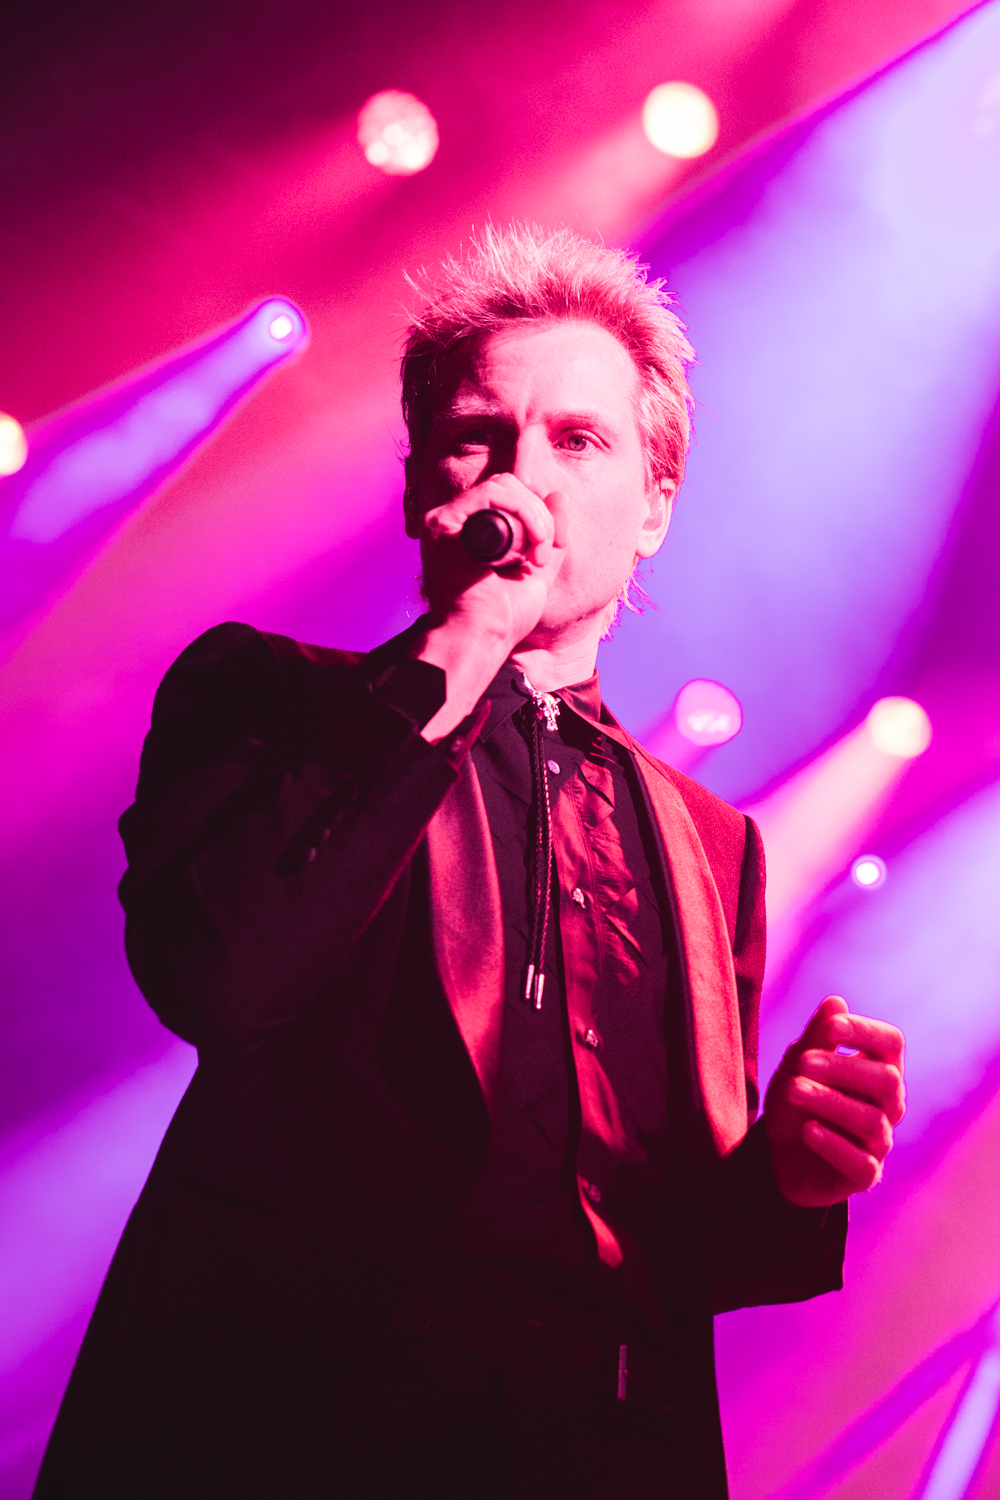 franz-ferdinand-fox-theater-oakland.jpg